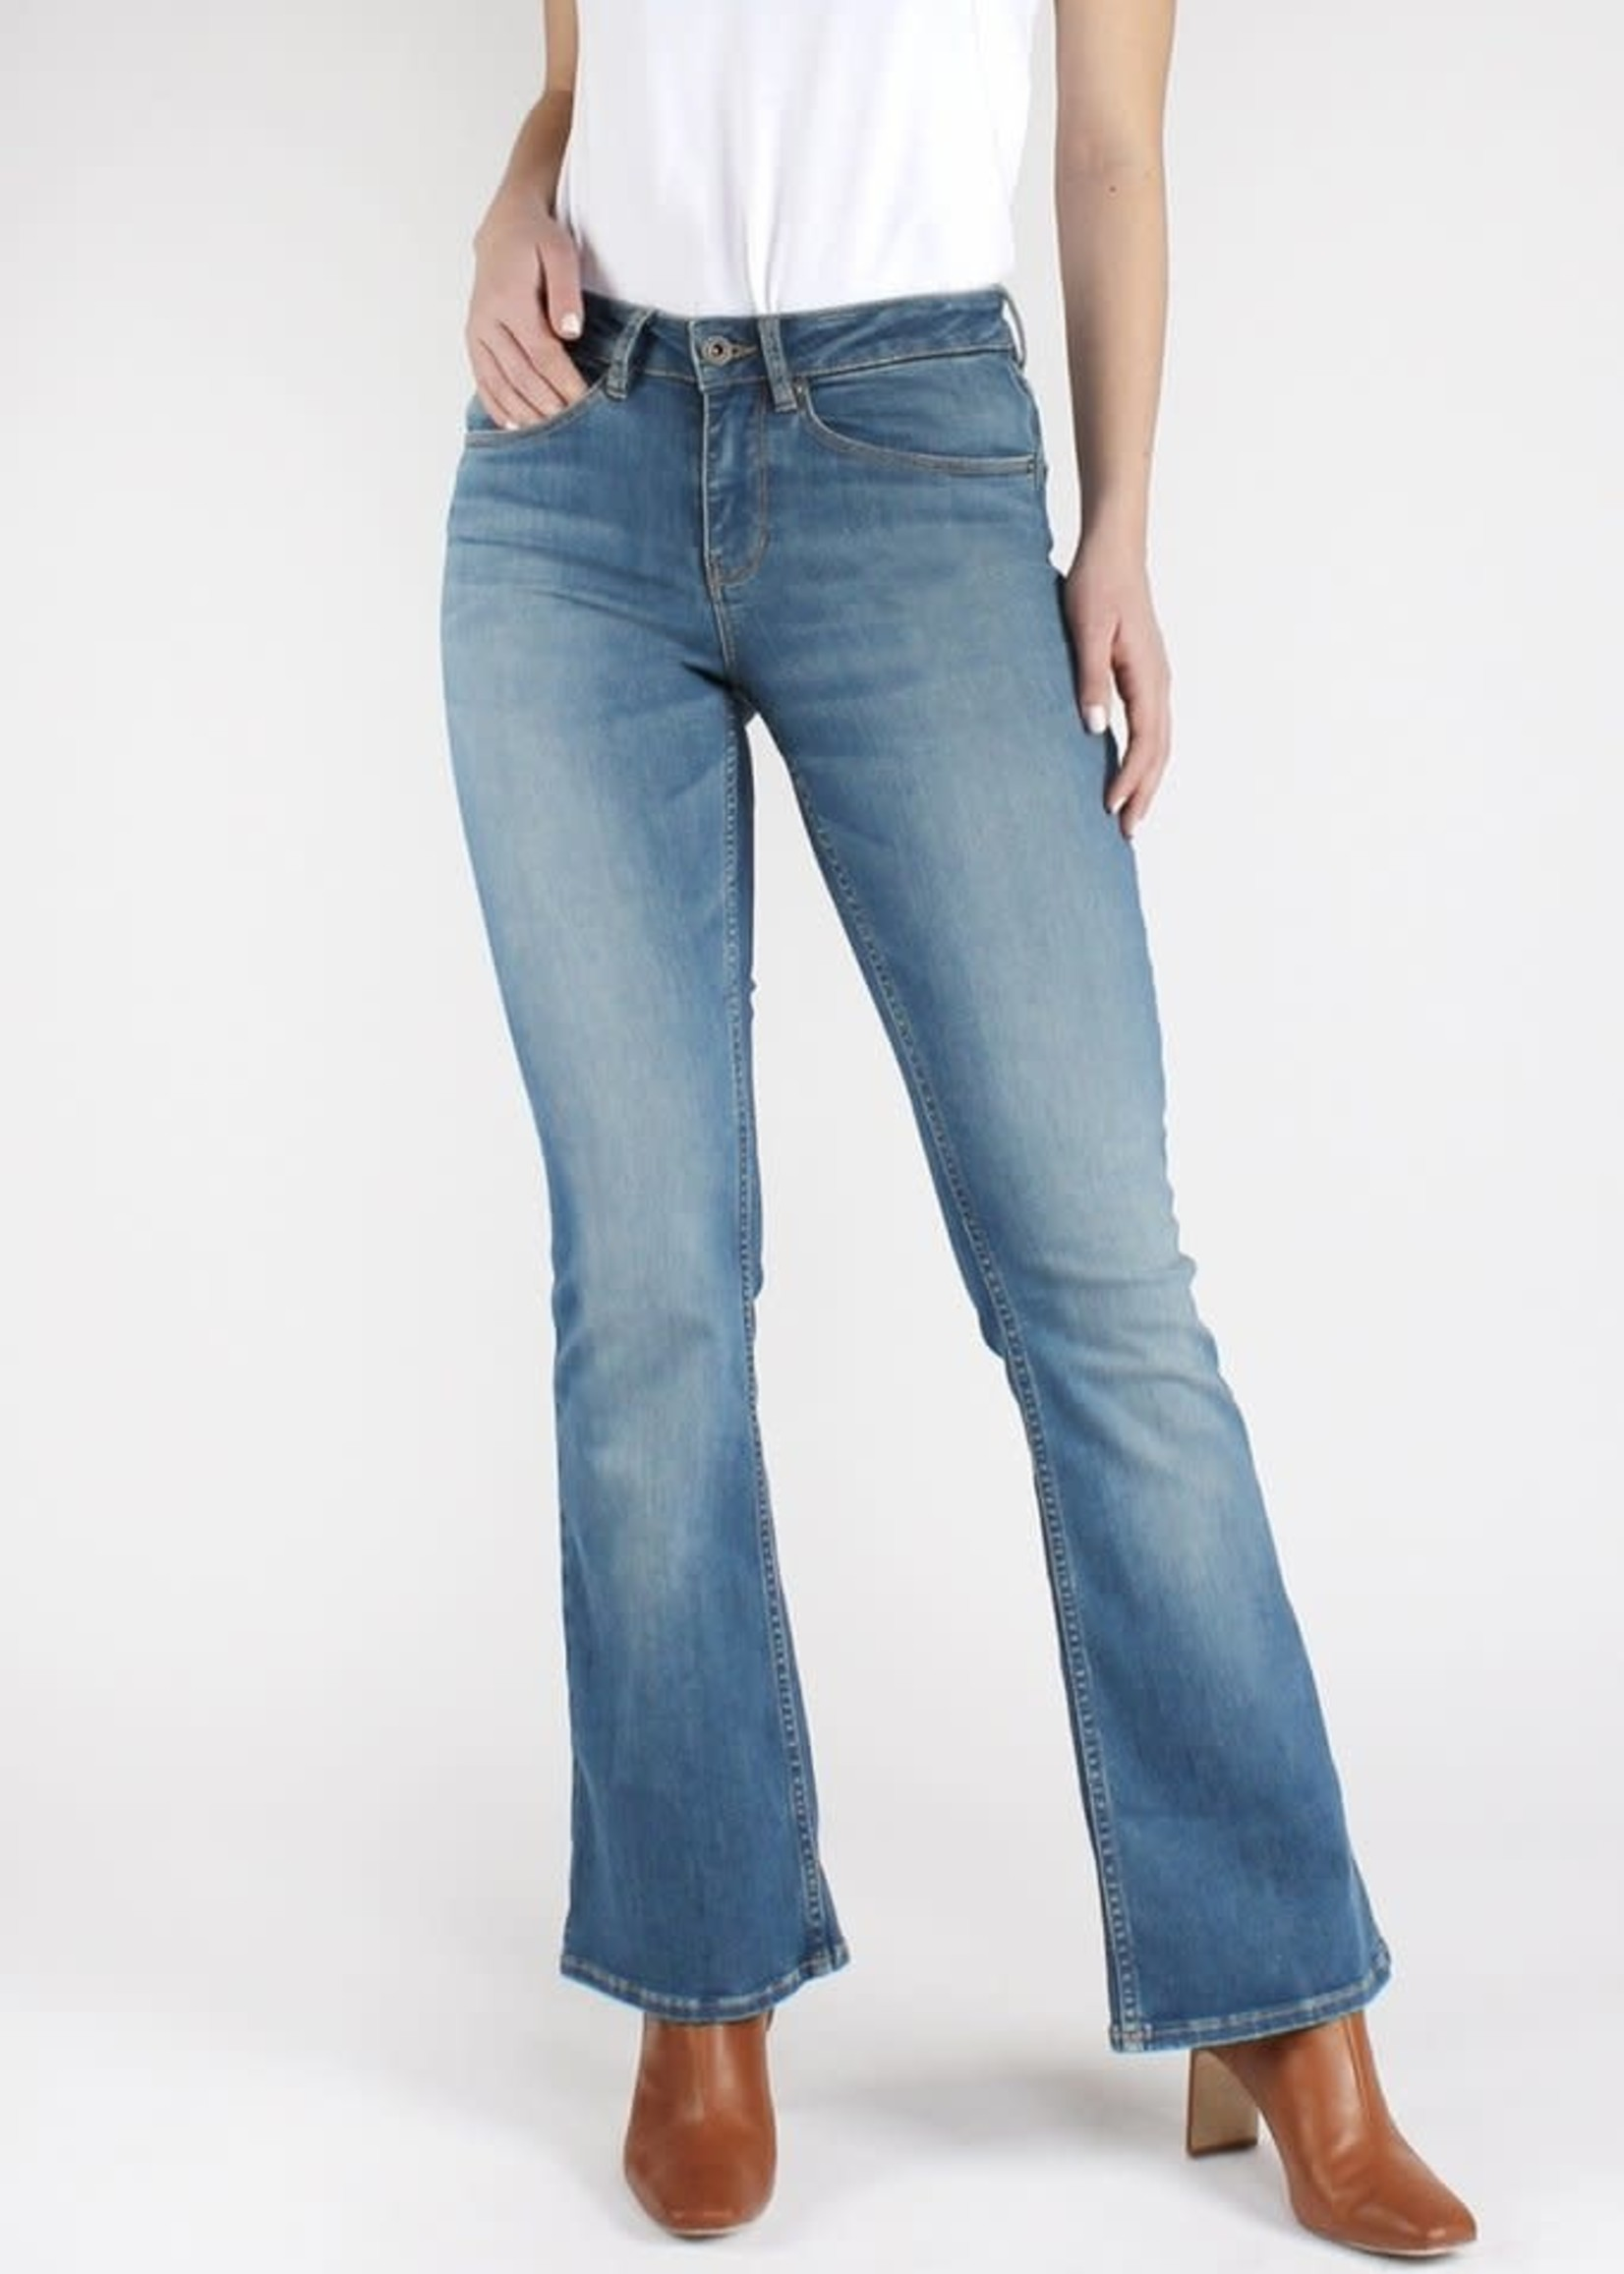 Kuyichi Amy Bootcut Essential